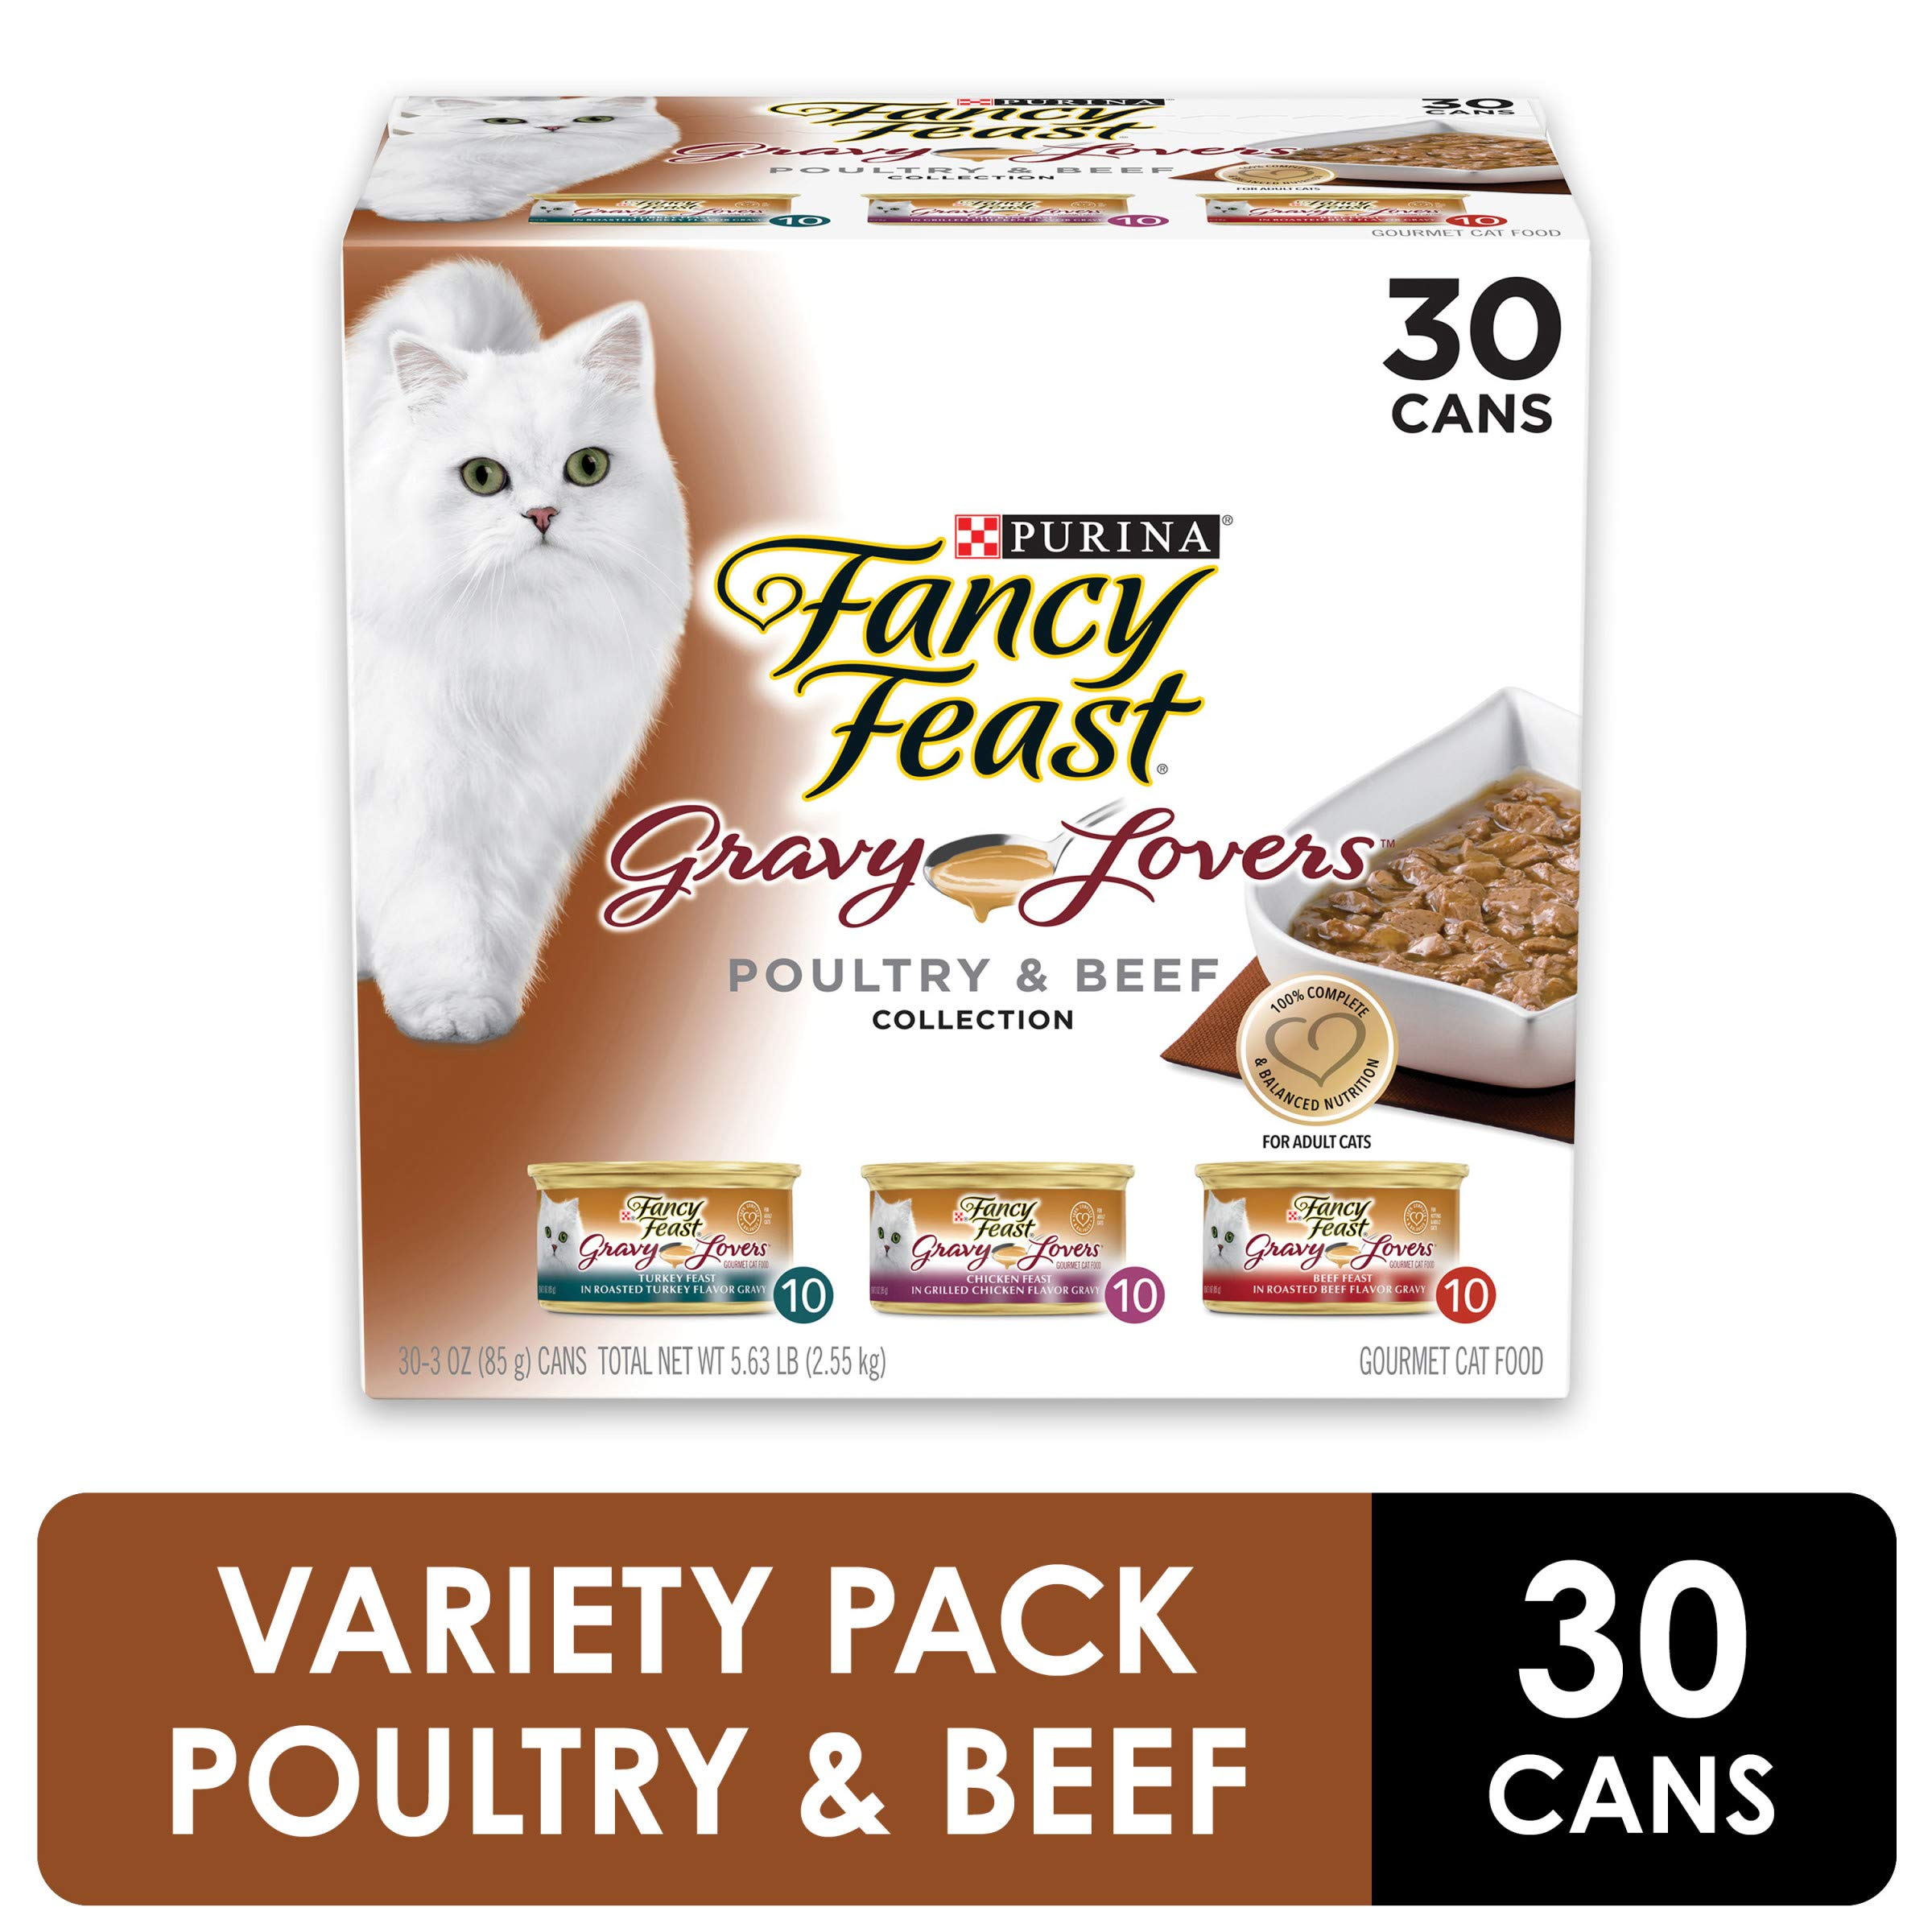 Purina Fancy Feast Gravy Wet Cat Food  Variety Pack, Gravy Lovers Poultry & Beef Feast Collection - (30) 3 oz. Cans by Purina Fancy Feast